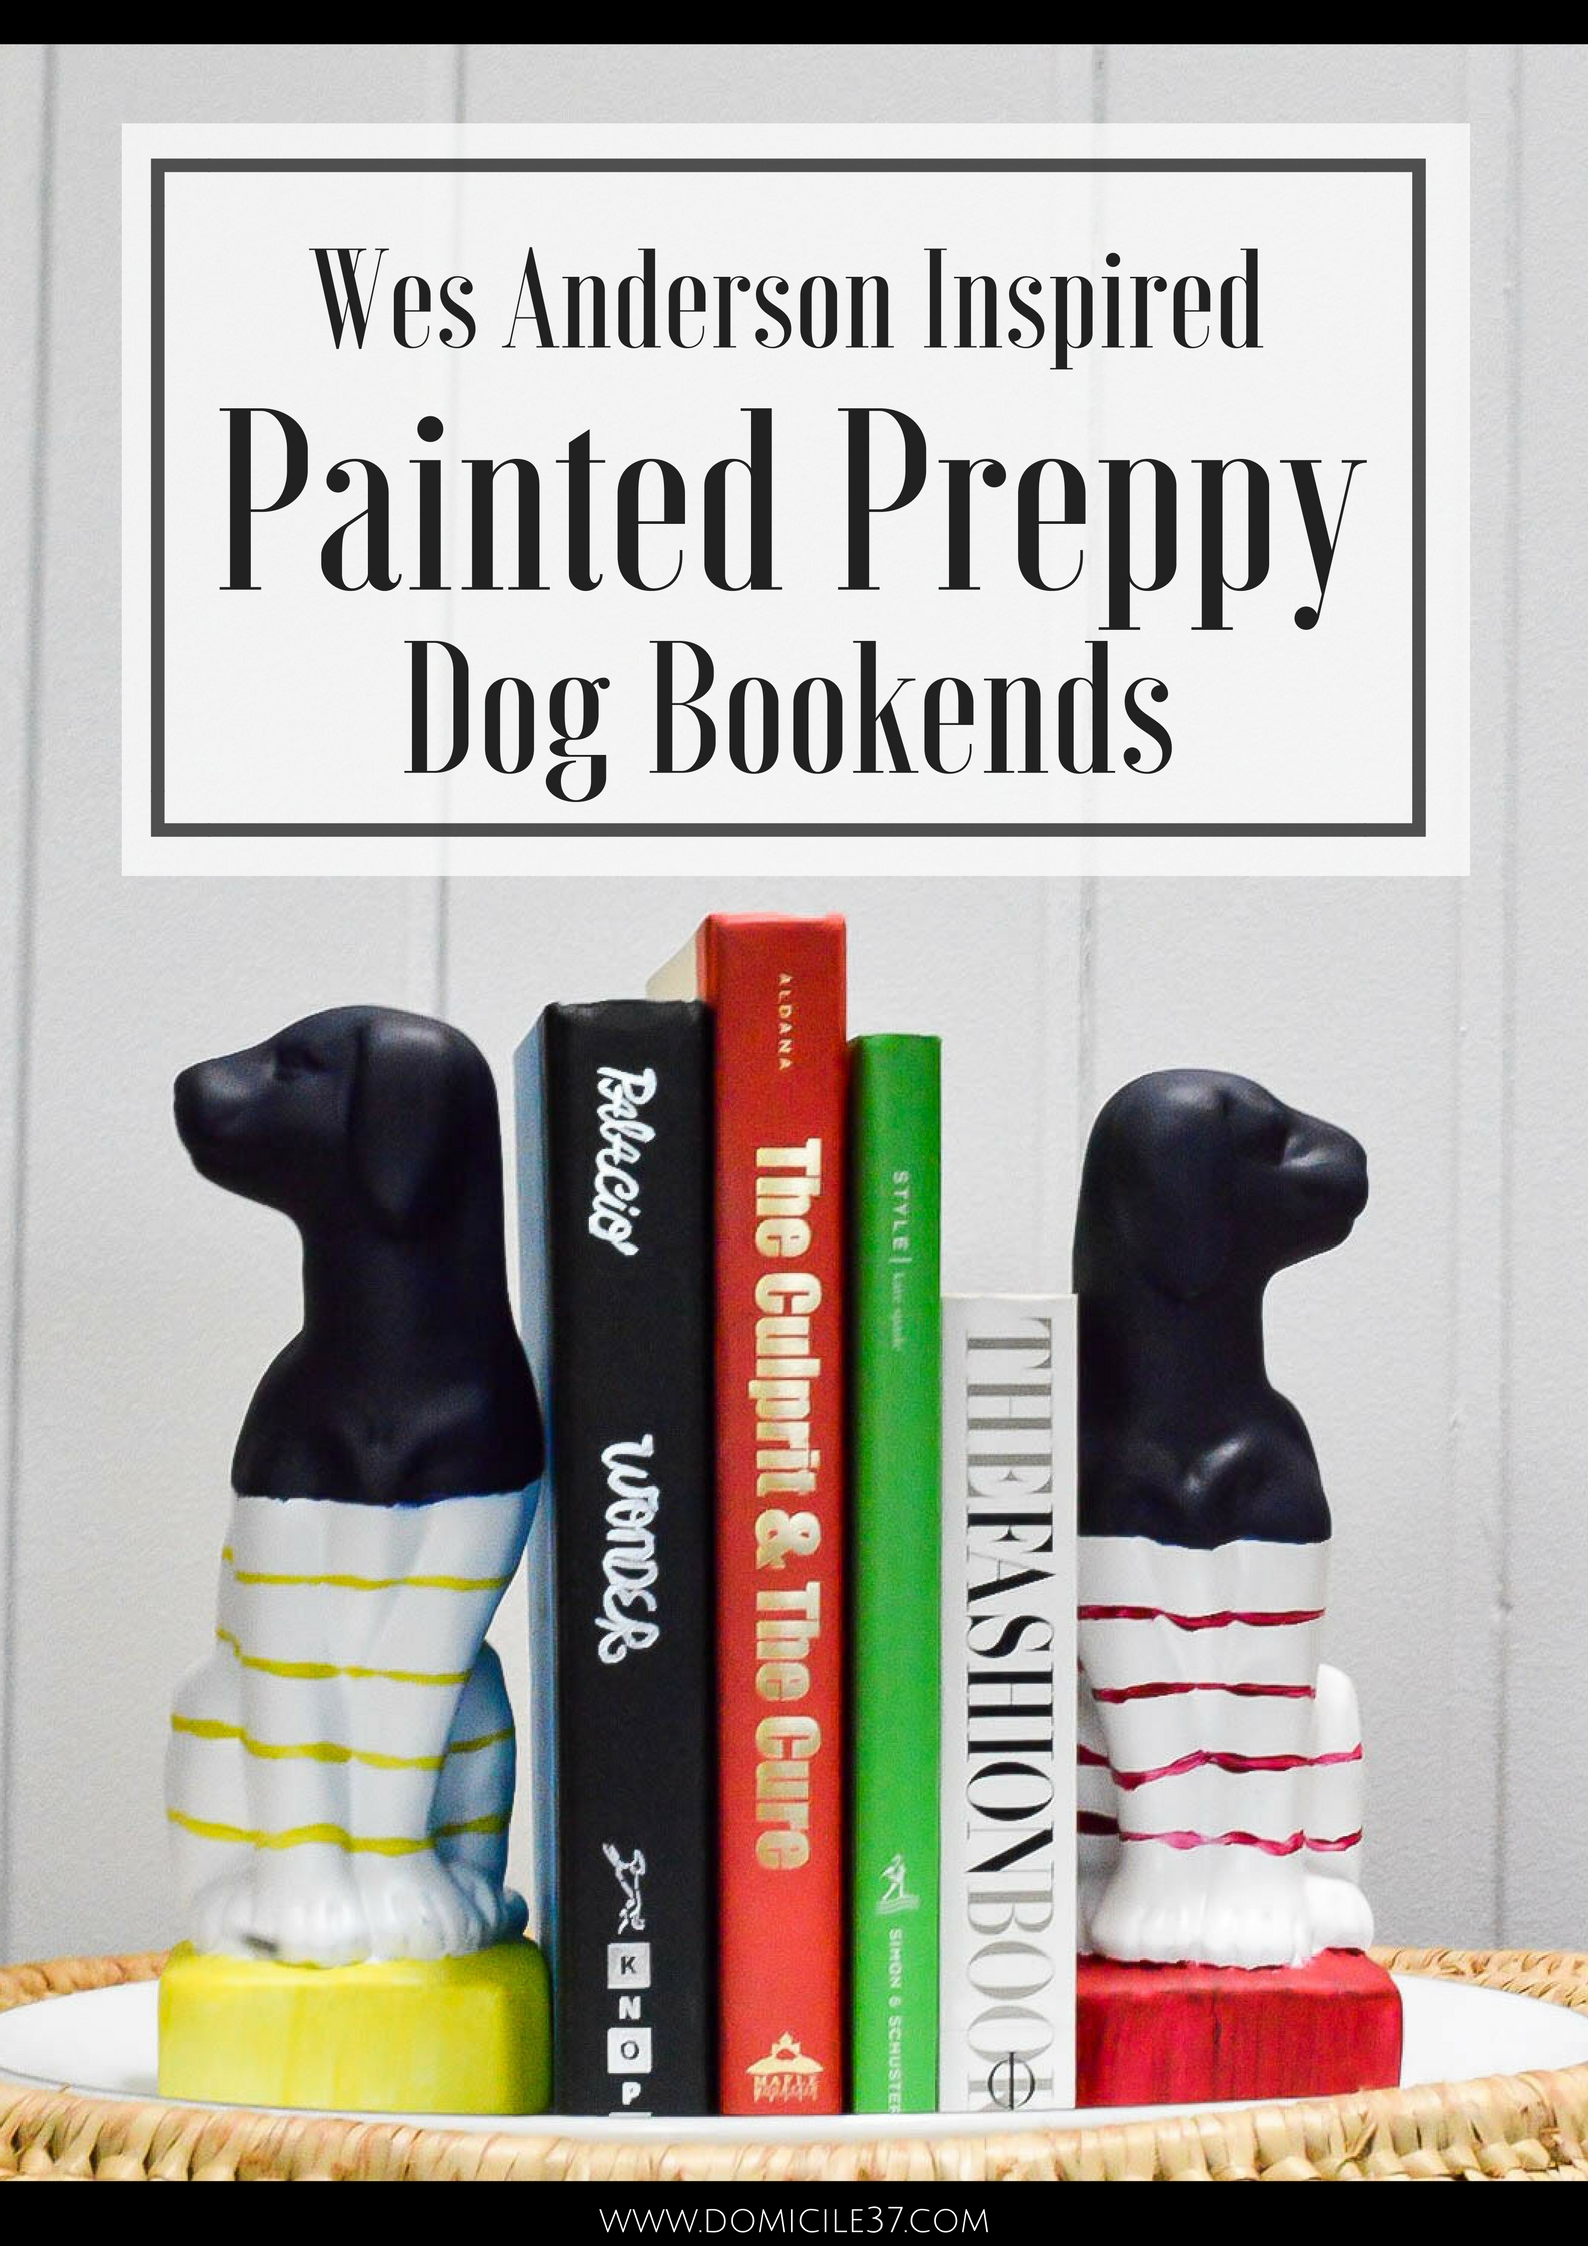 Wes Anderson style | Inspired by DIY | DIY Bookends | Dog Bookends | Preppy decor | Wes Anderson inspired home decor | Wes Anderson theme | Hobby Lobby dog decor DIY | Striped bookends | kids room decor